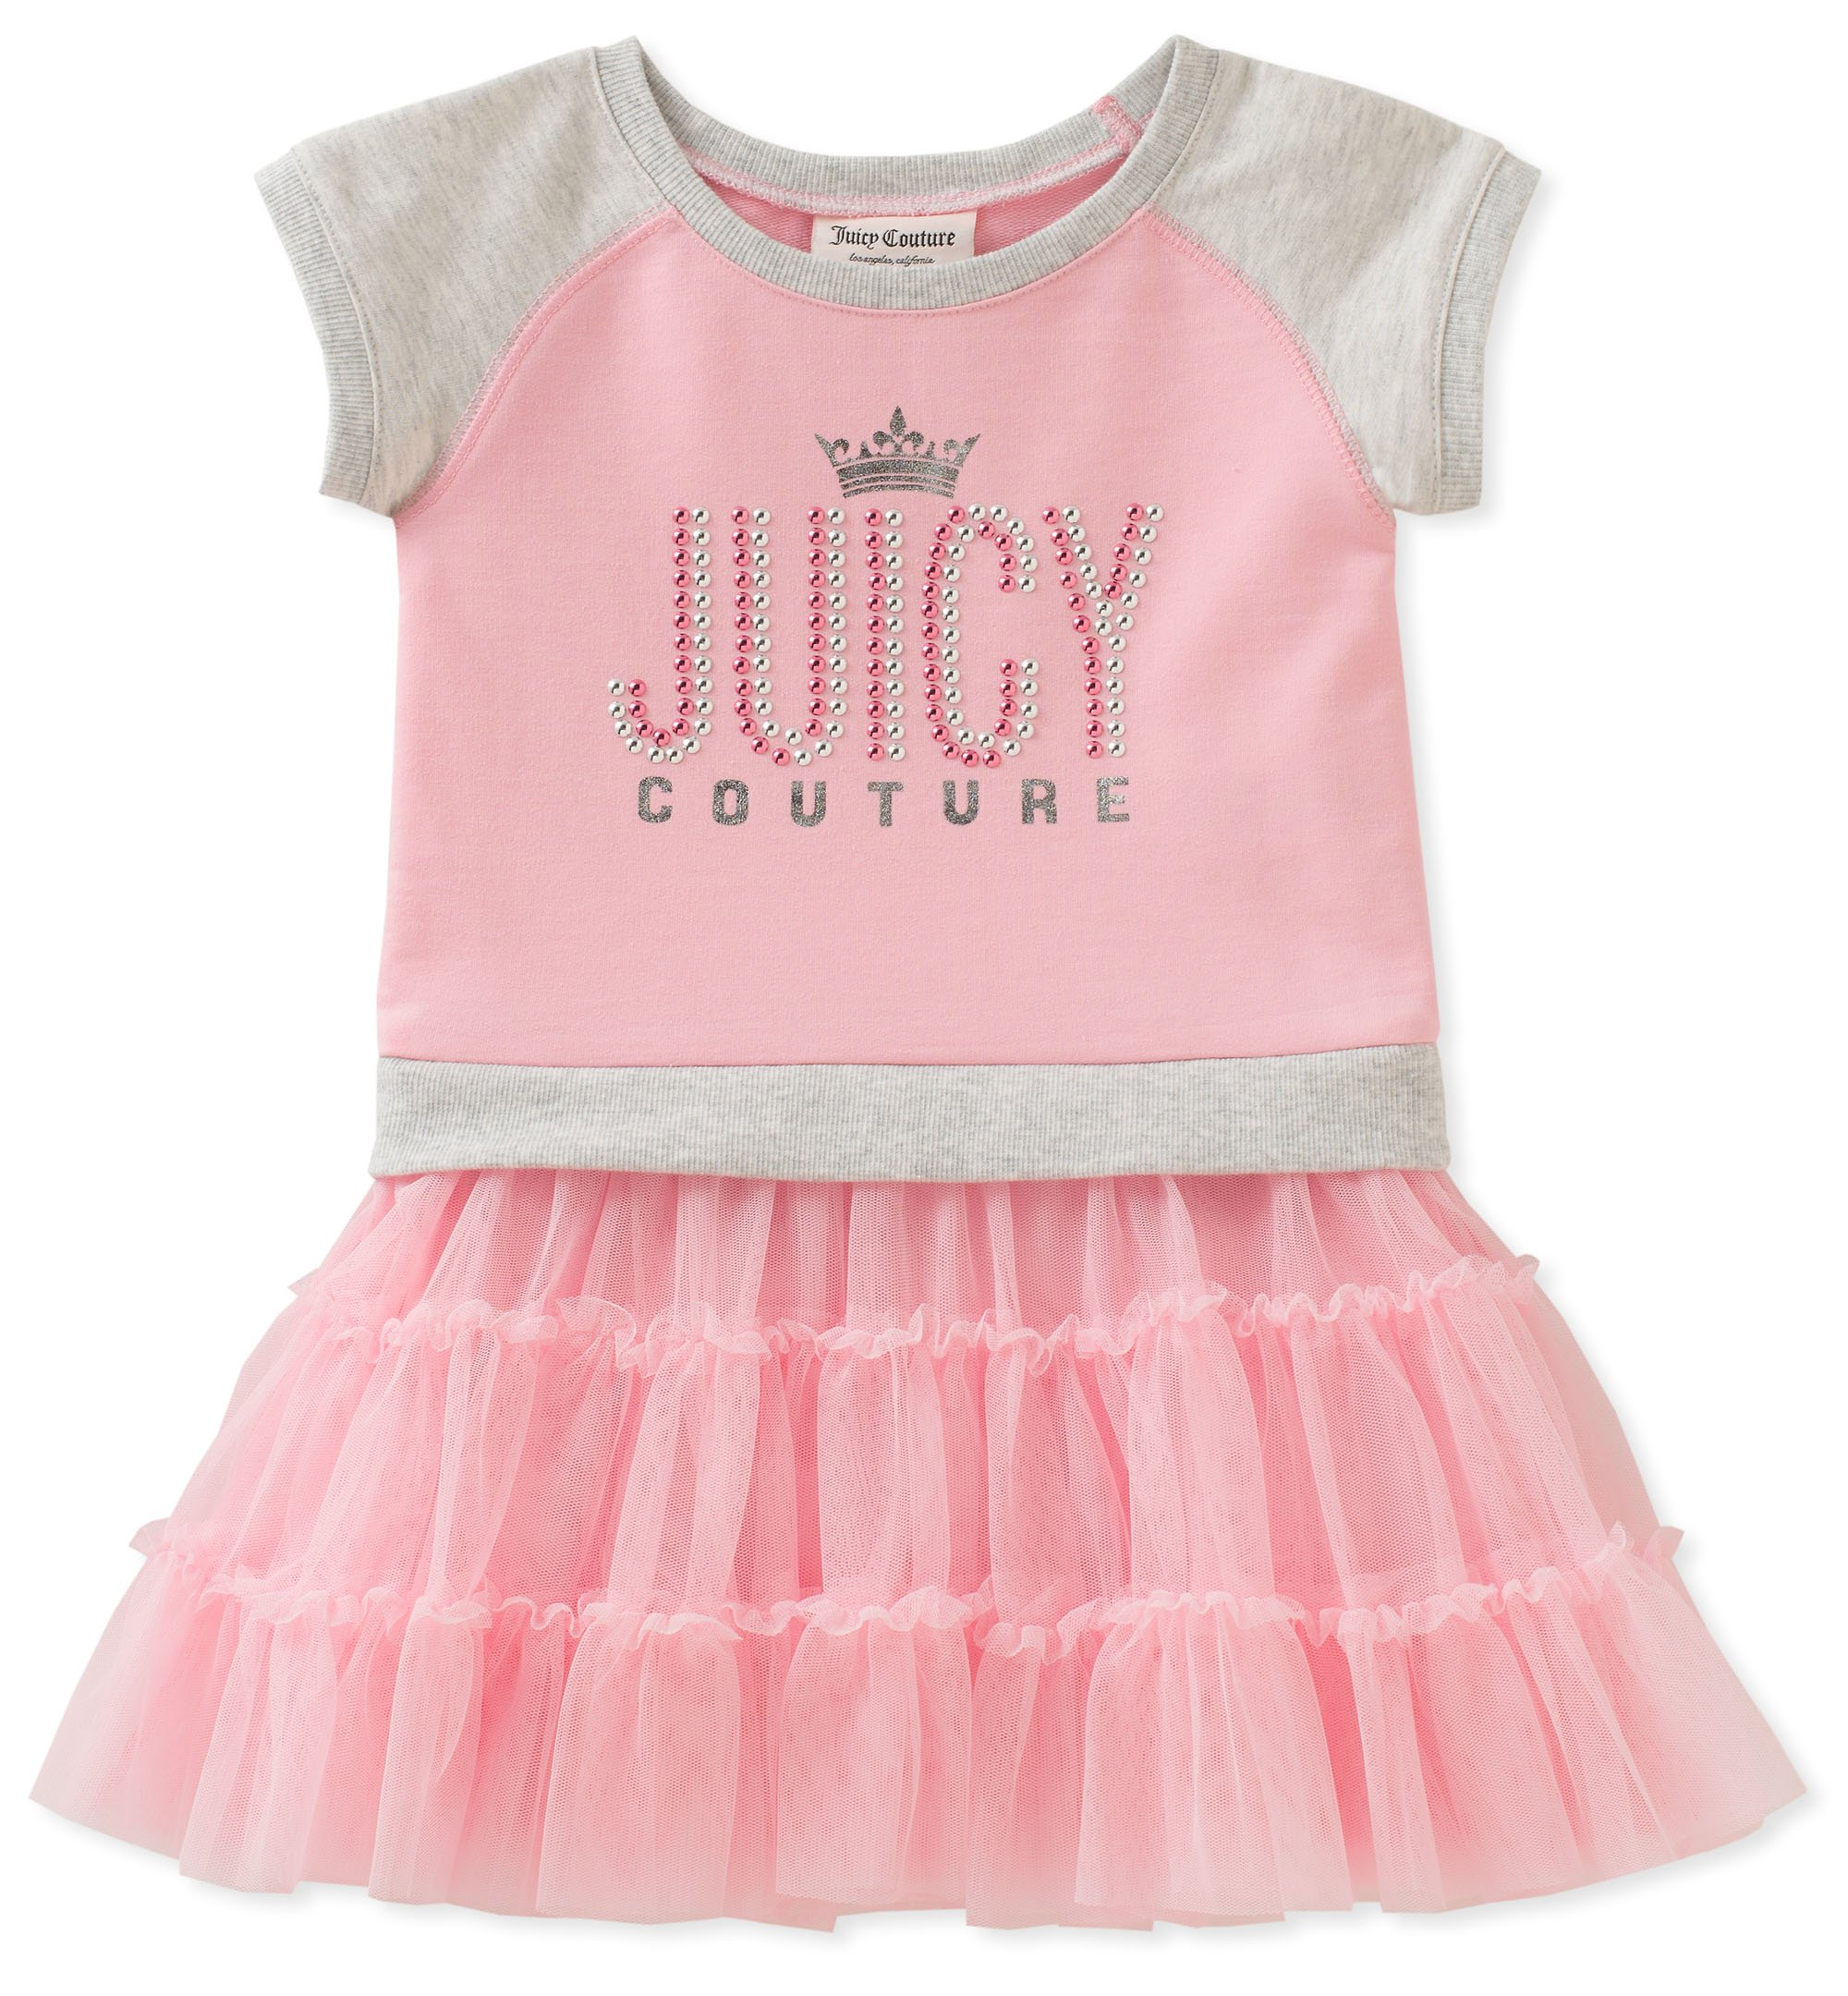 Juicy Couture Girls' Toddler Casual Dress, Pink/Gray, 3T